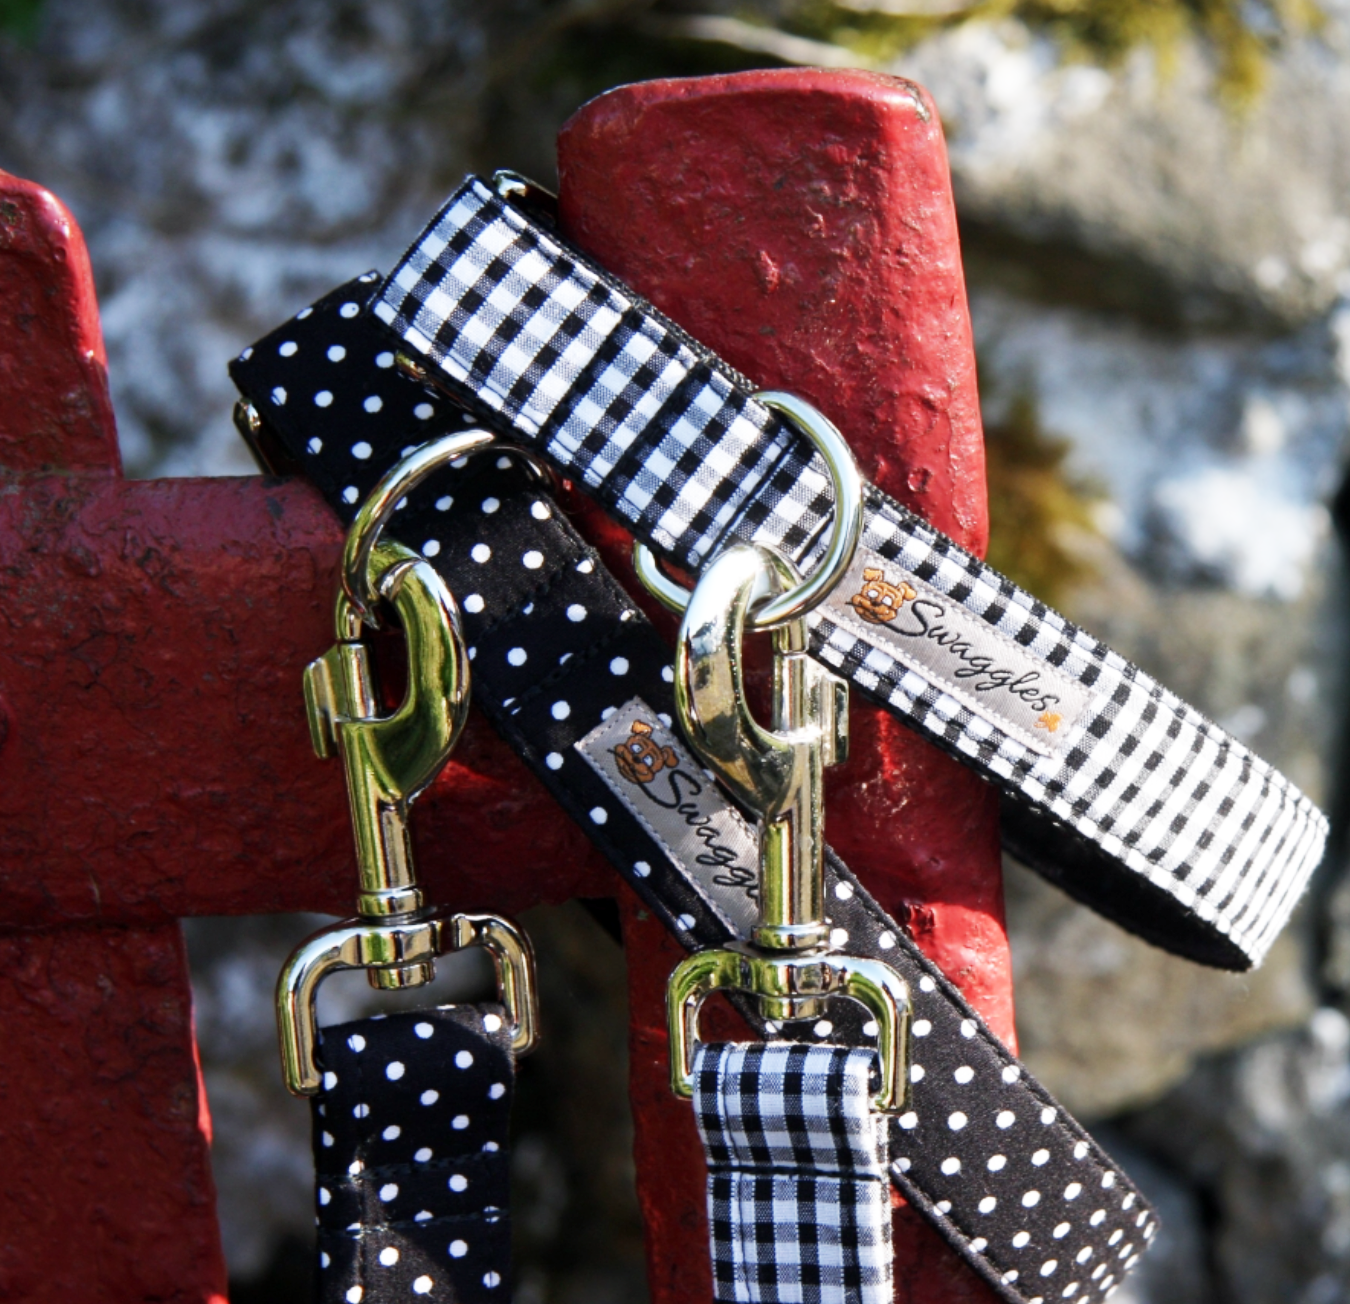 SWAGGLES  Inspired by a love of dogs, art and design, these collars & leads are really unique. Find the perfect match for your pooch.